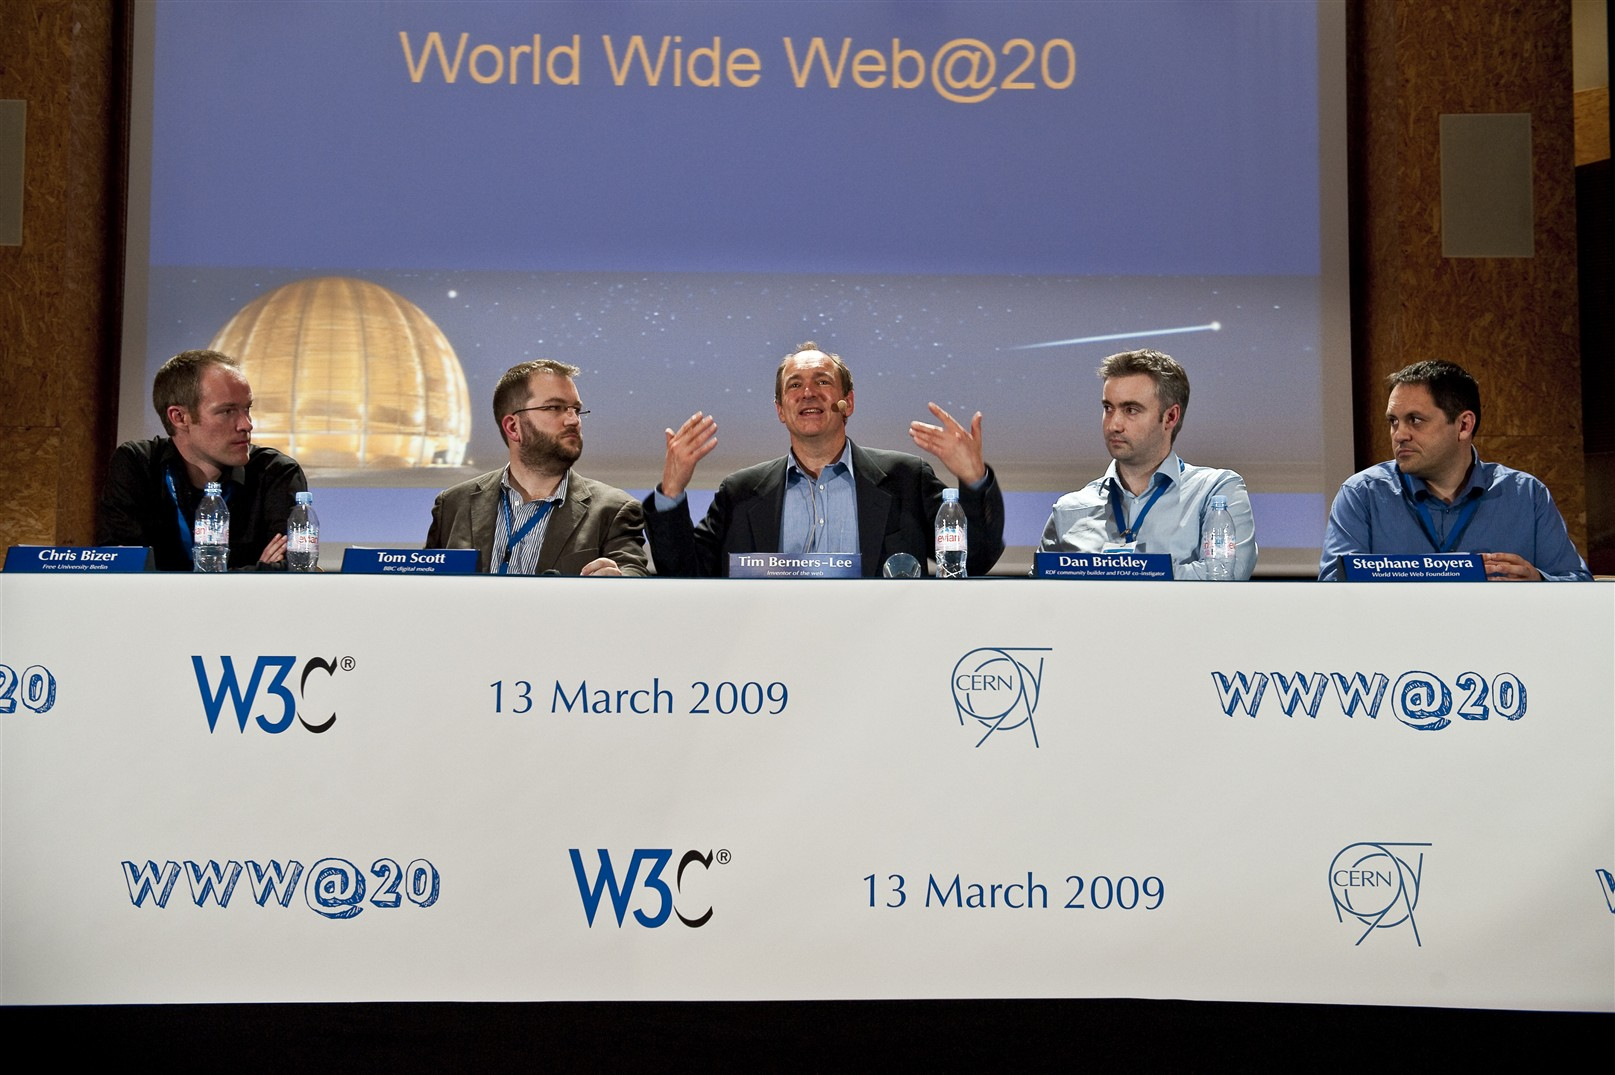 www@20: Celebrations for 20 years of the web. Questions for the panel : Jean-Francois Groff, Ben Segal, Tim Berners-Lee and Robert Cailliau